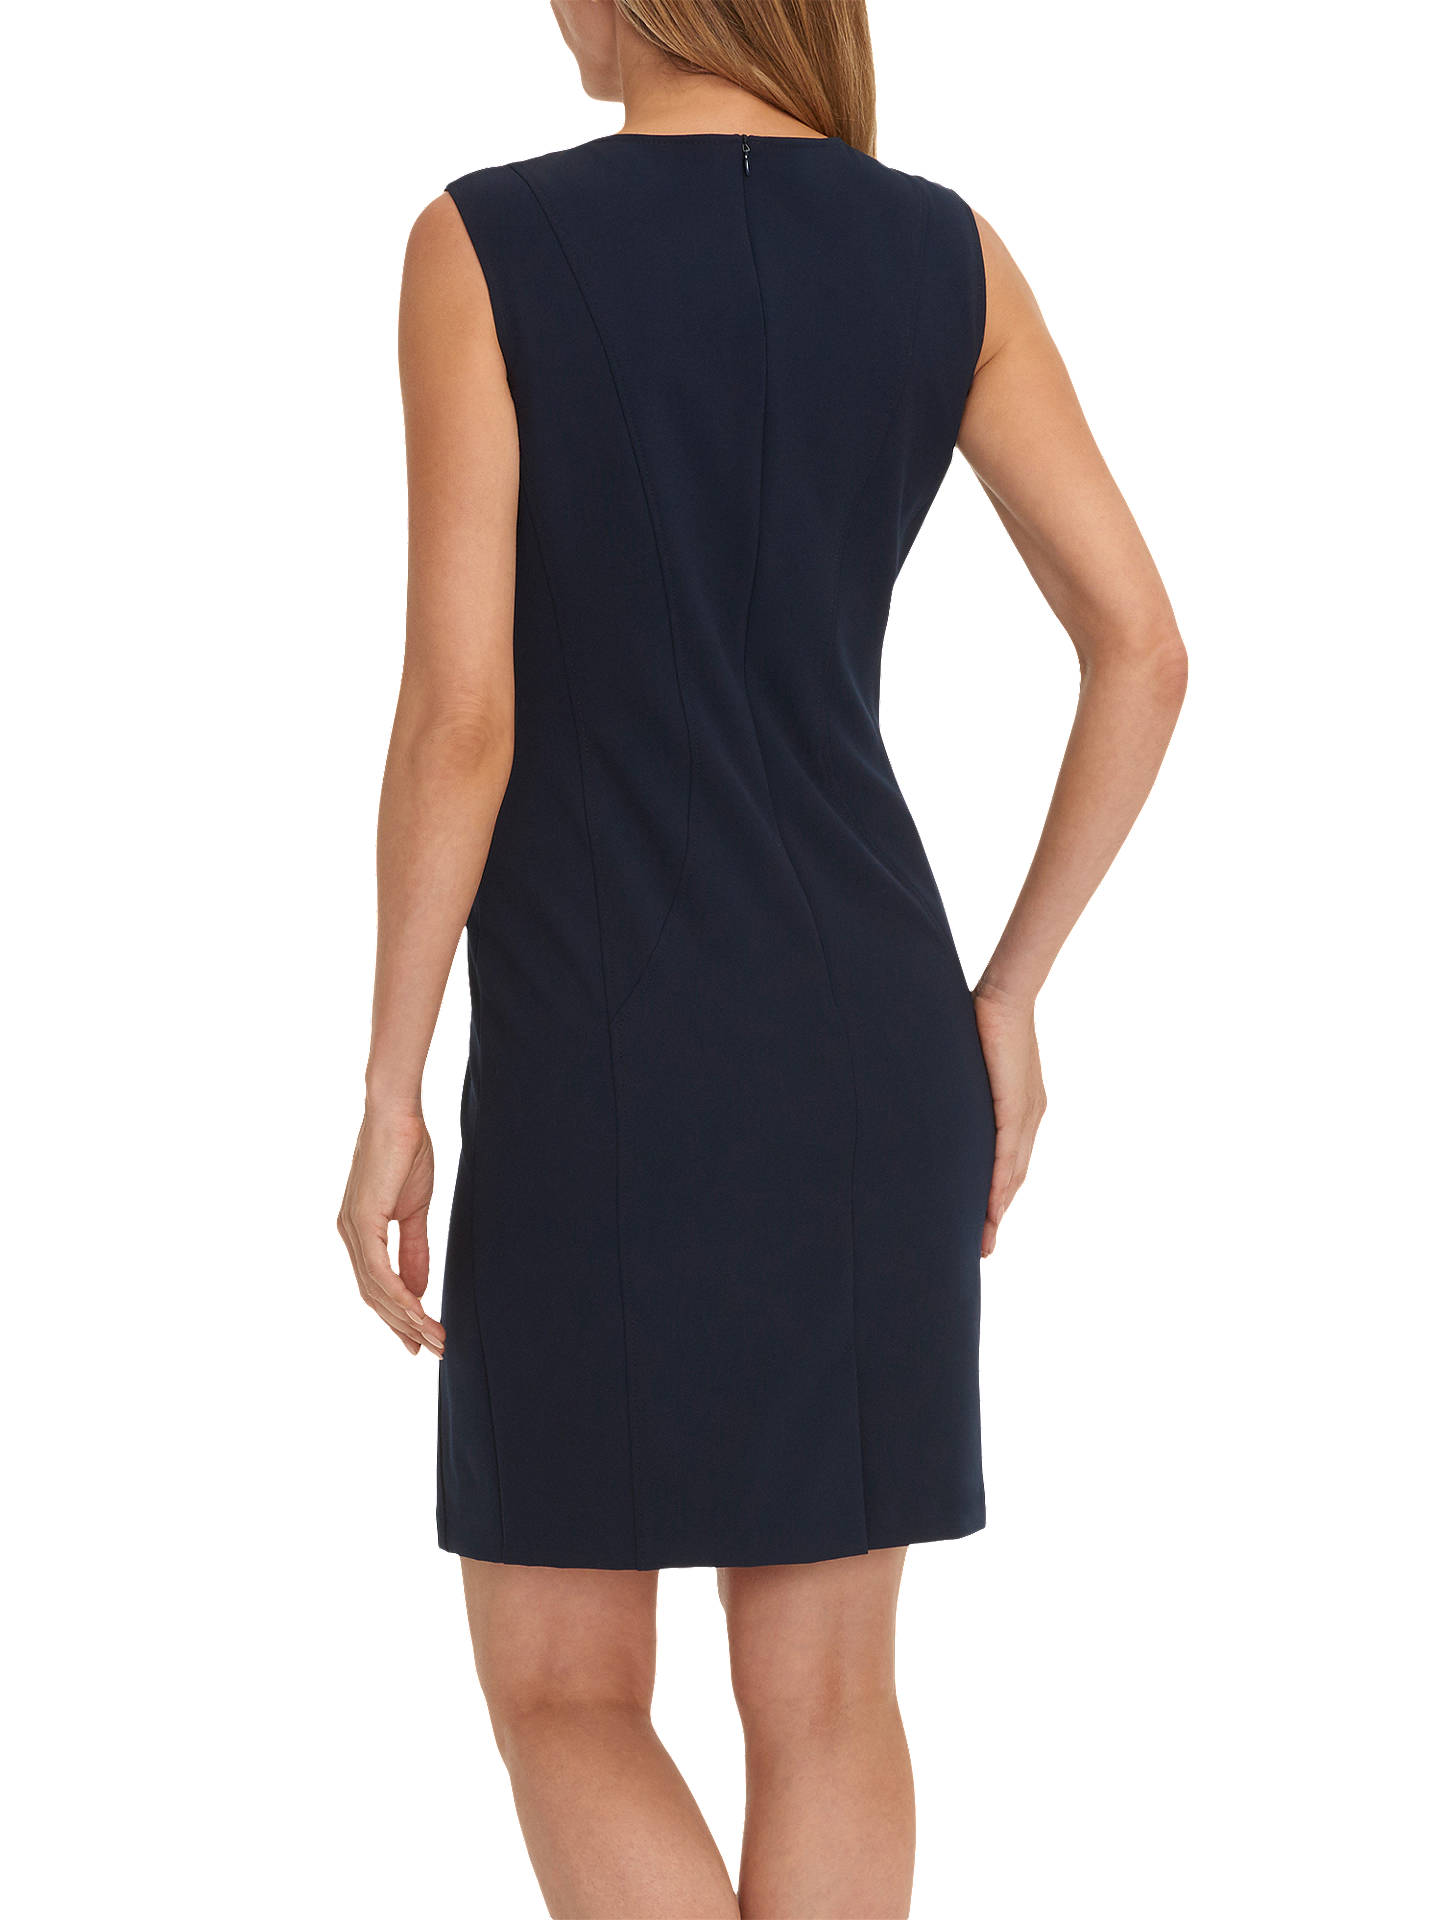 BuyBetty Barclay Round Neck Sleeveless Shift Dress, Night Sky, 8 Online at johnlewis.com